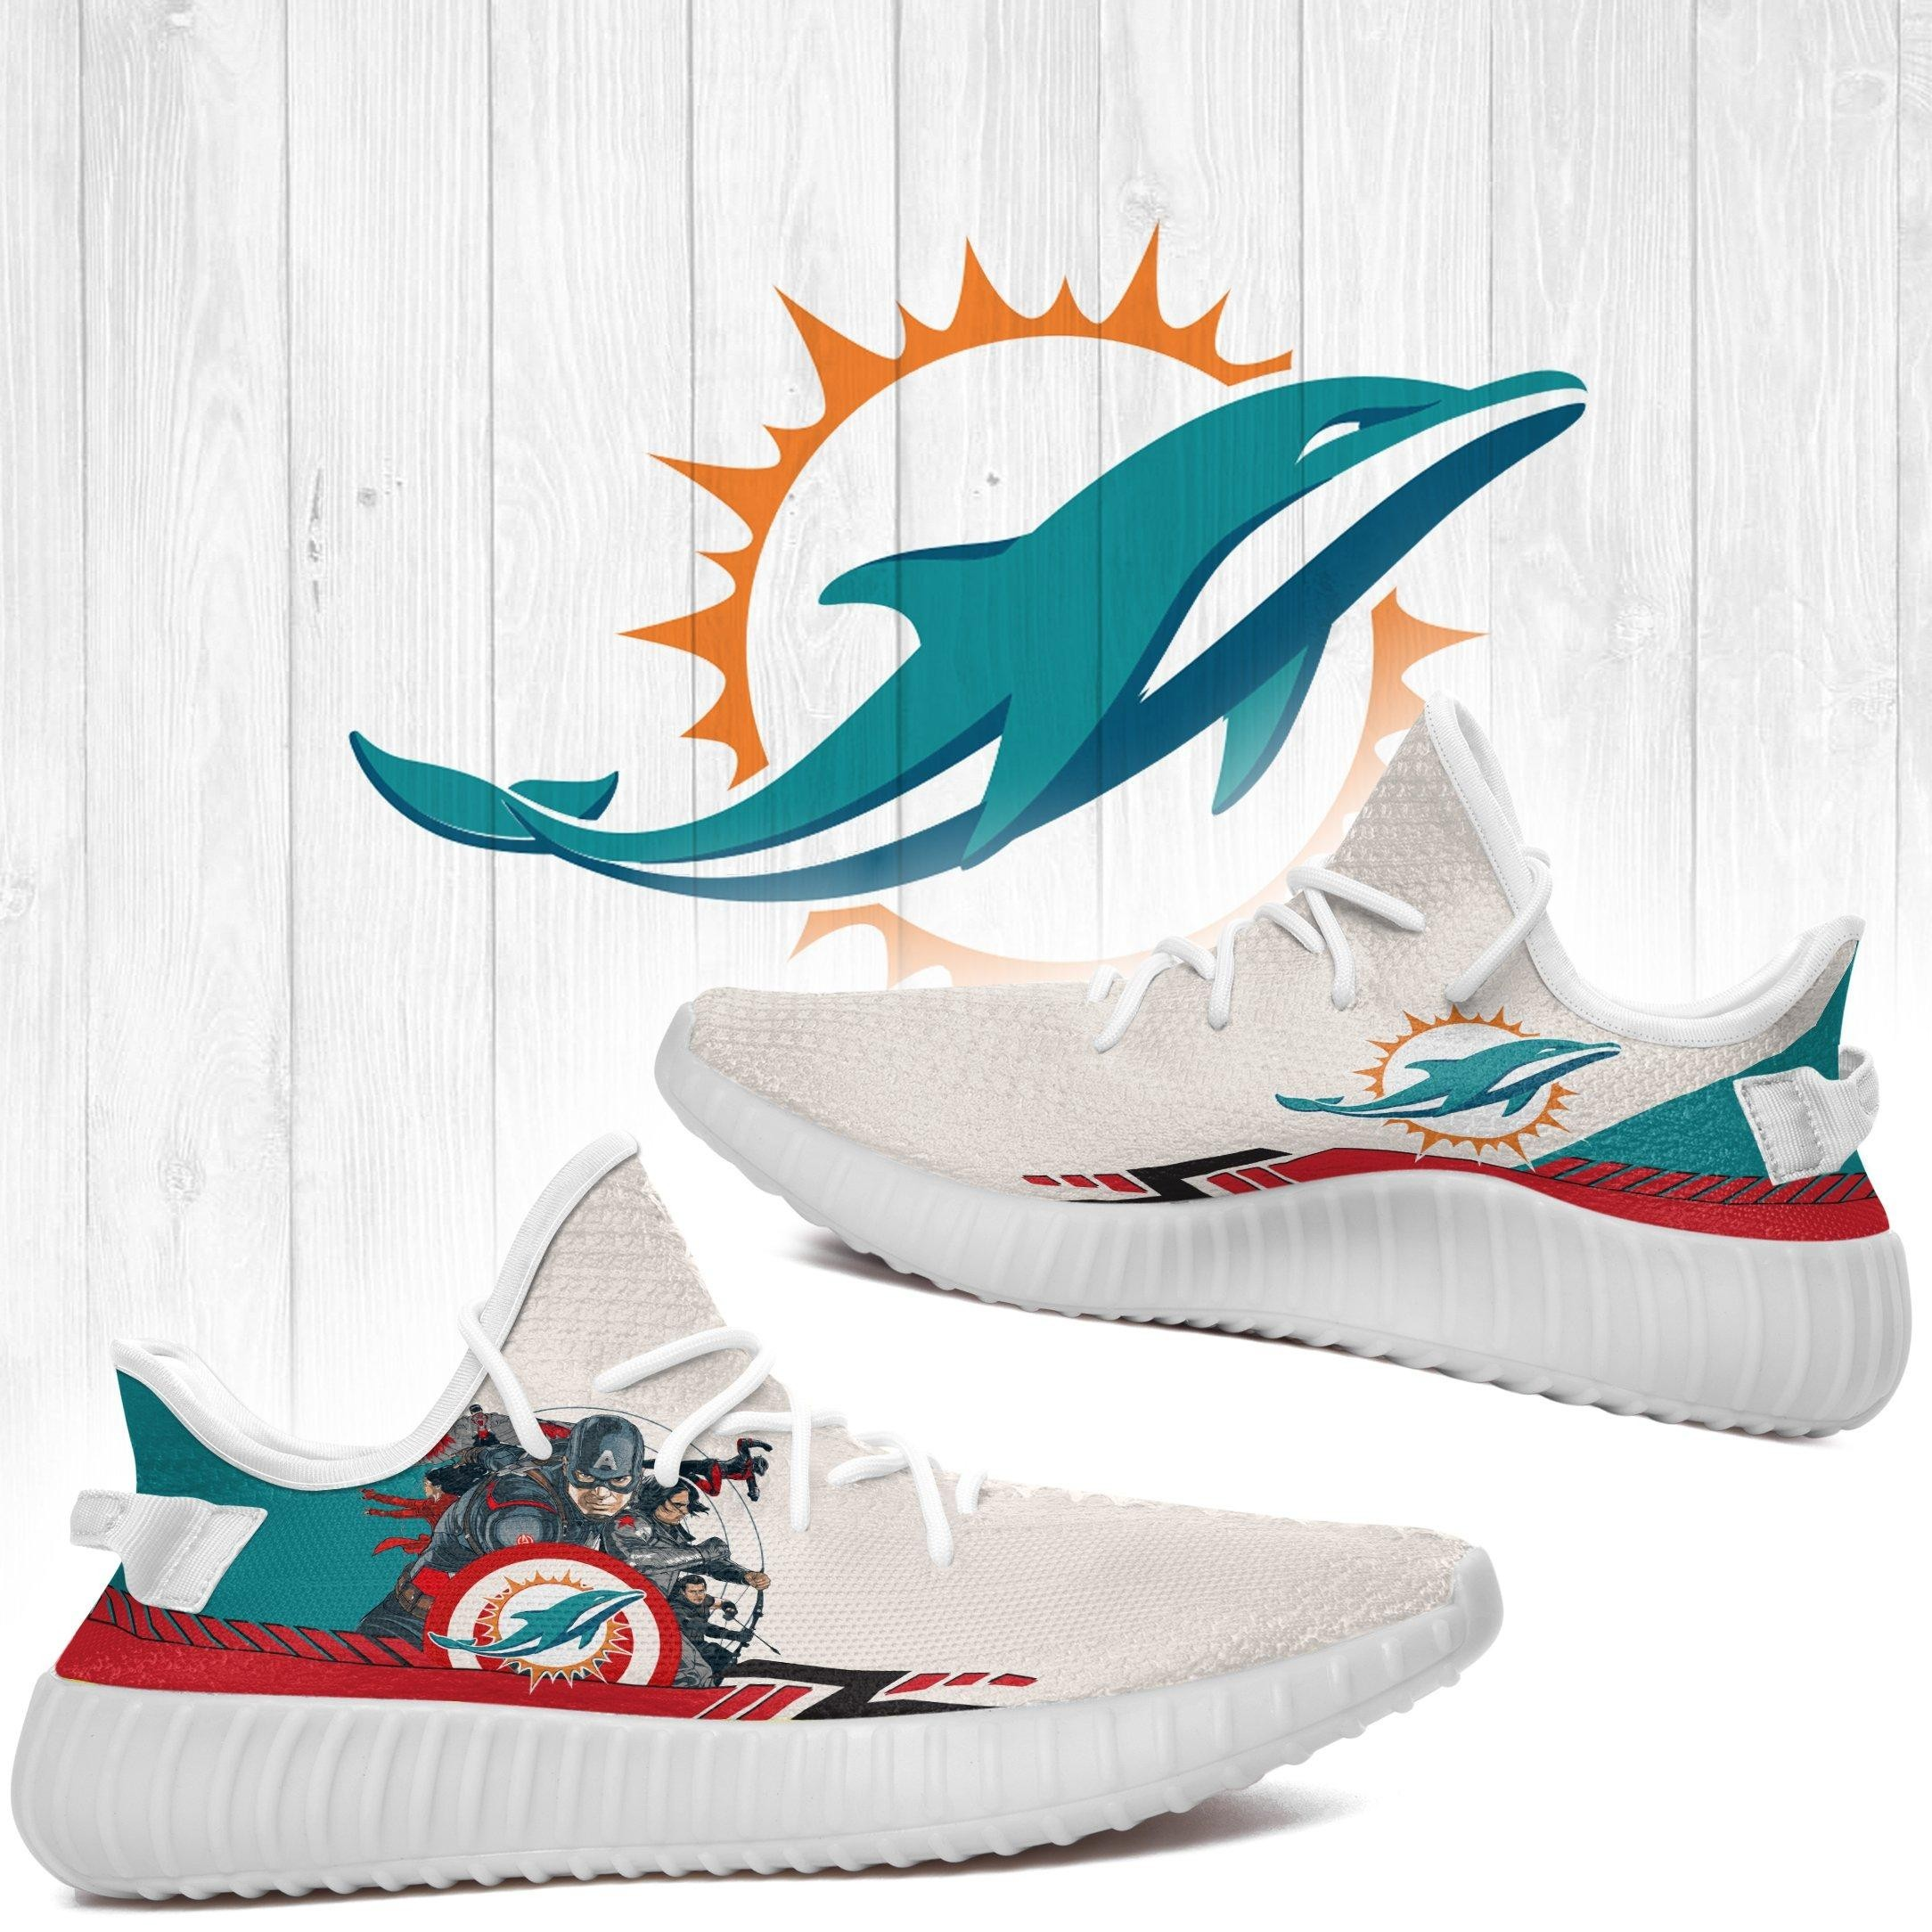 Superheroes-Miami Dolphins NFL Yeezy Boost 350 v2 Shoes Custom Yeezys Trends 2020